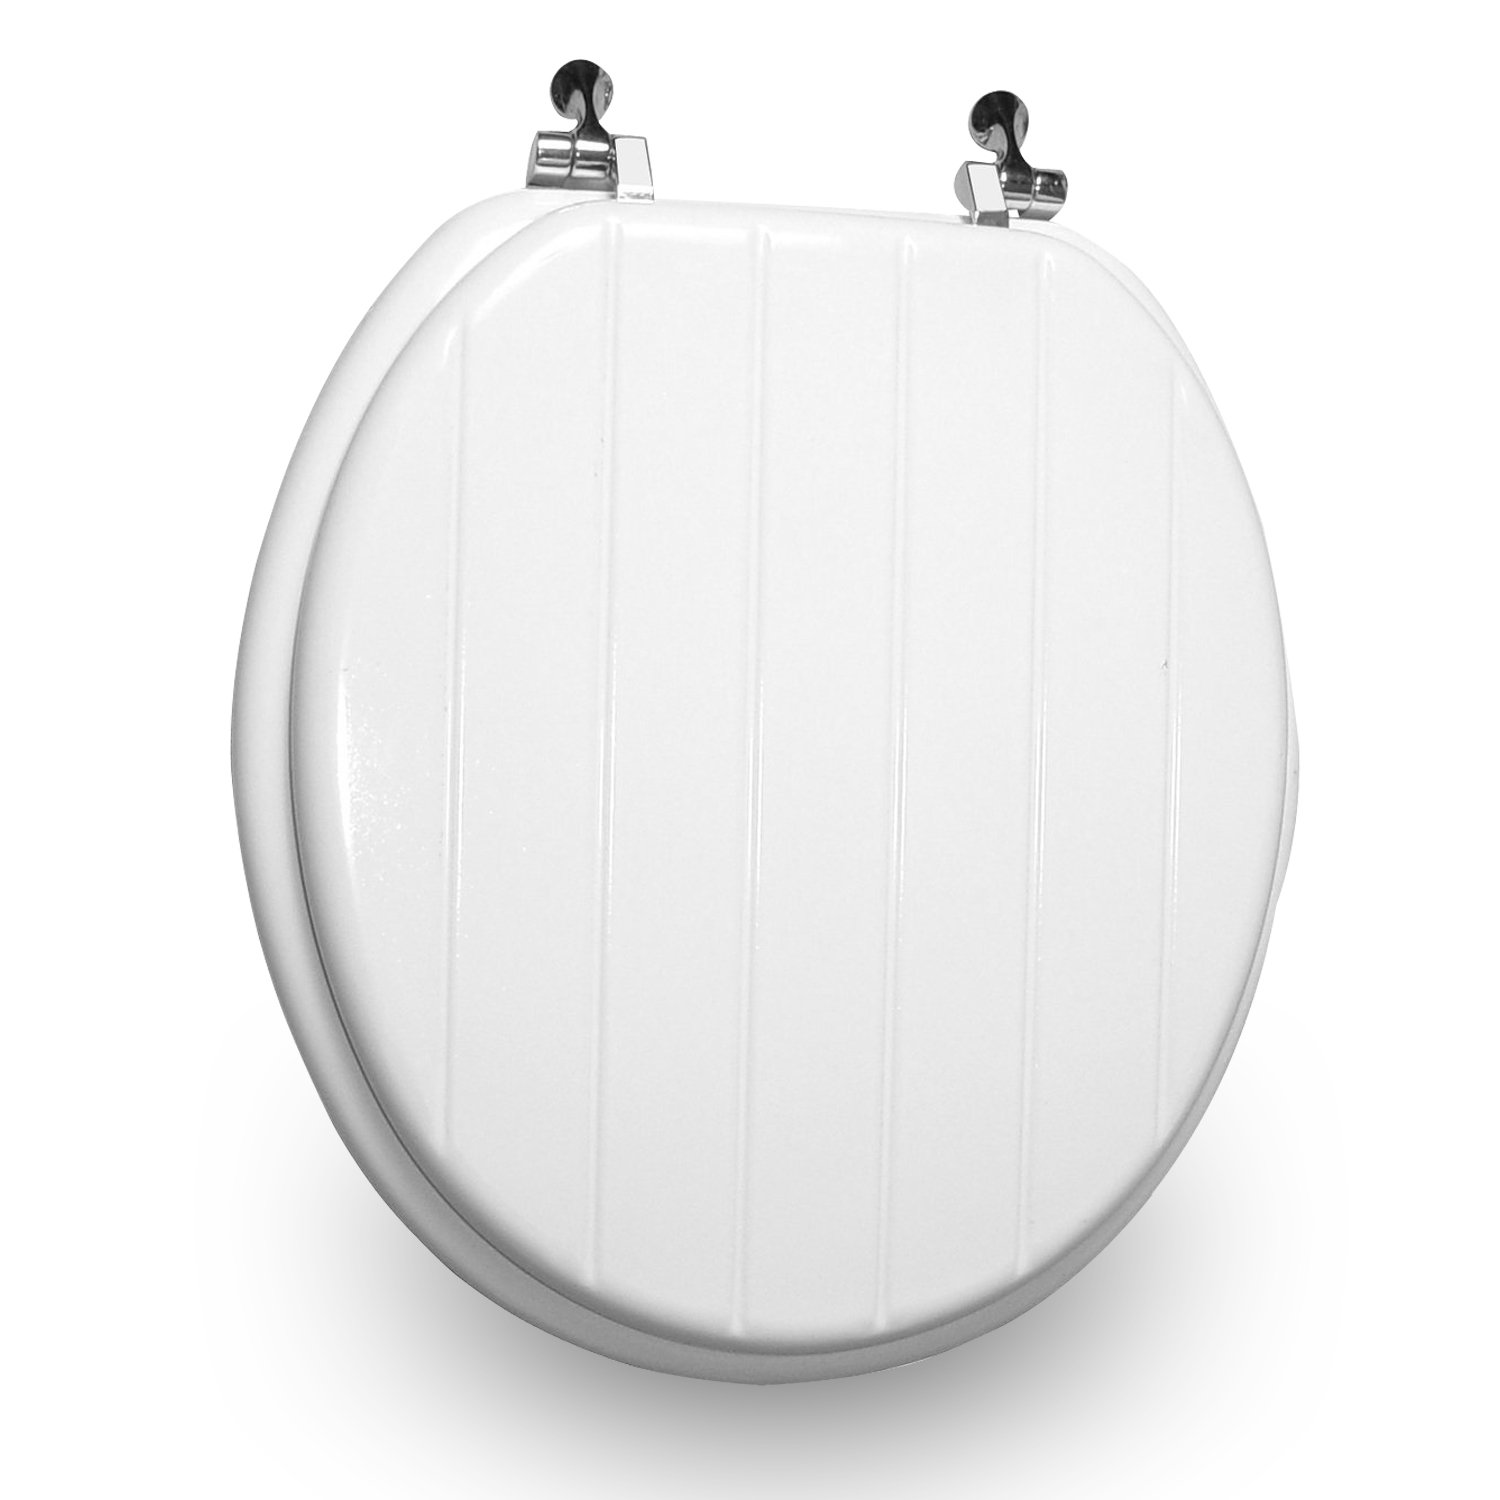 Trimmer Engraved Panel Design Wood Toilet Seat, White.